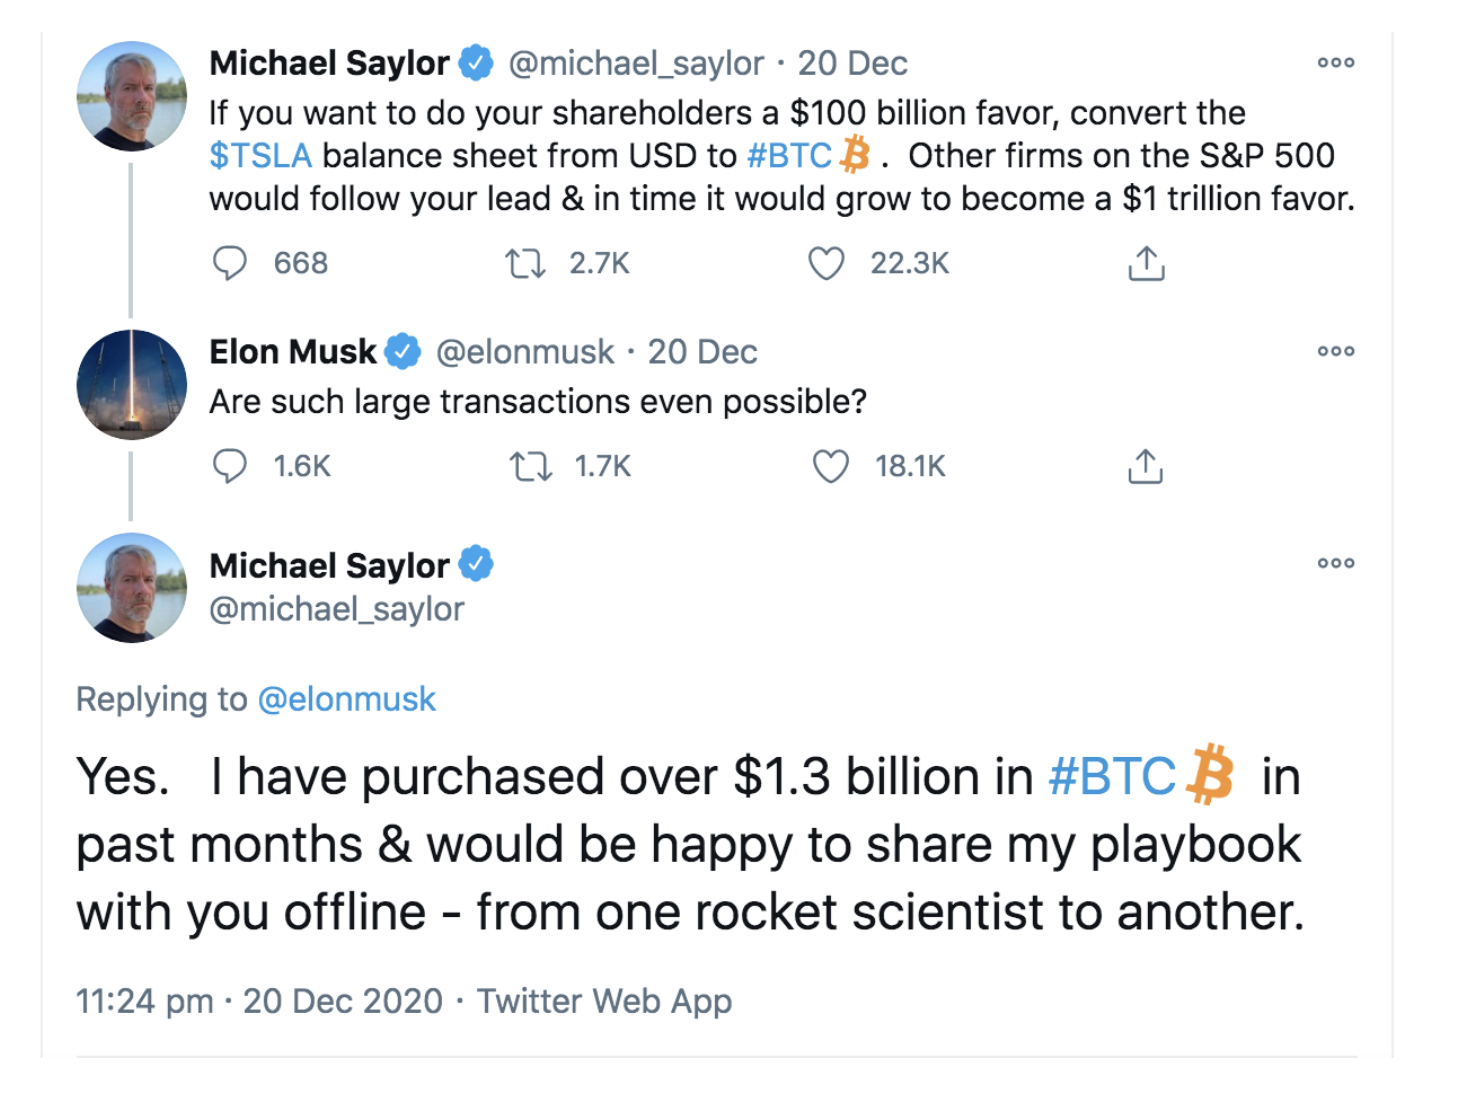 Saylor and Musk's Twitter exchange in late December 2020